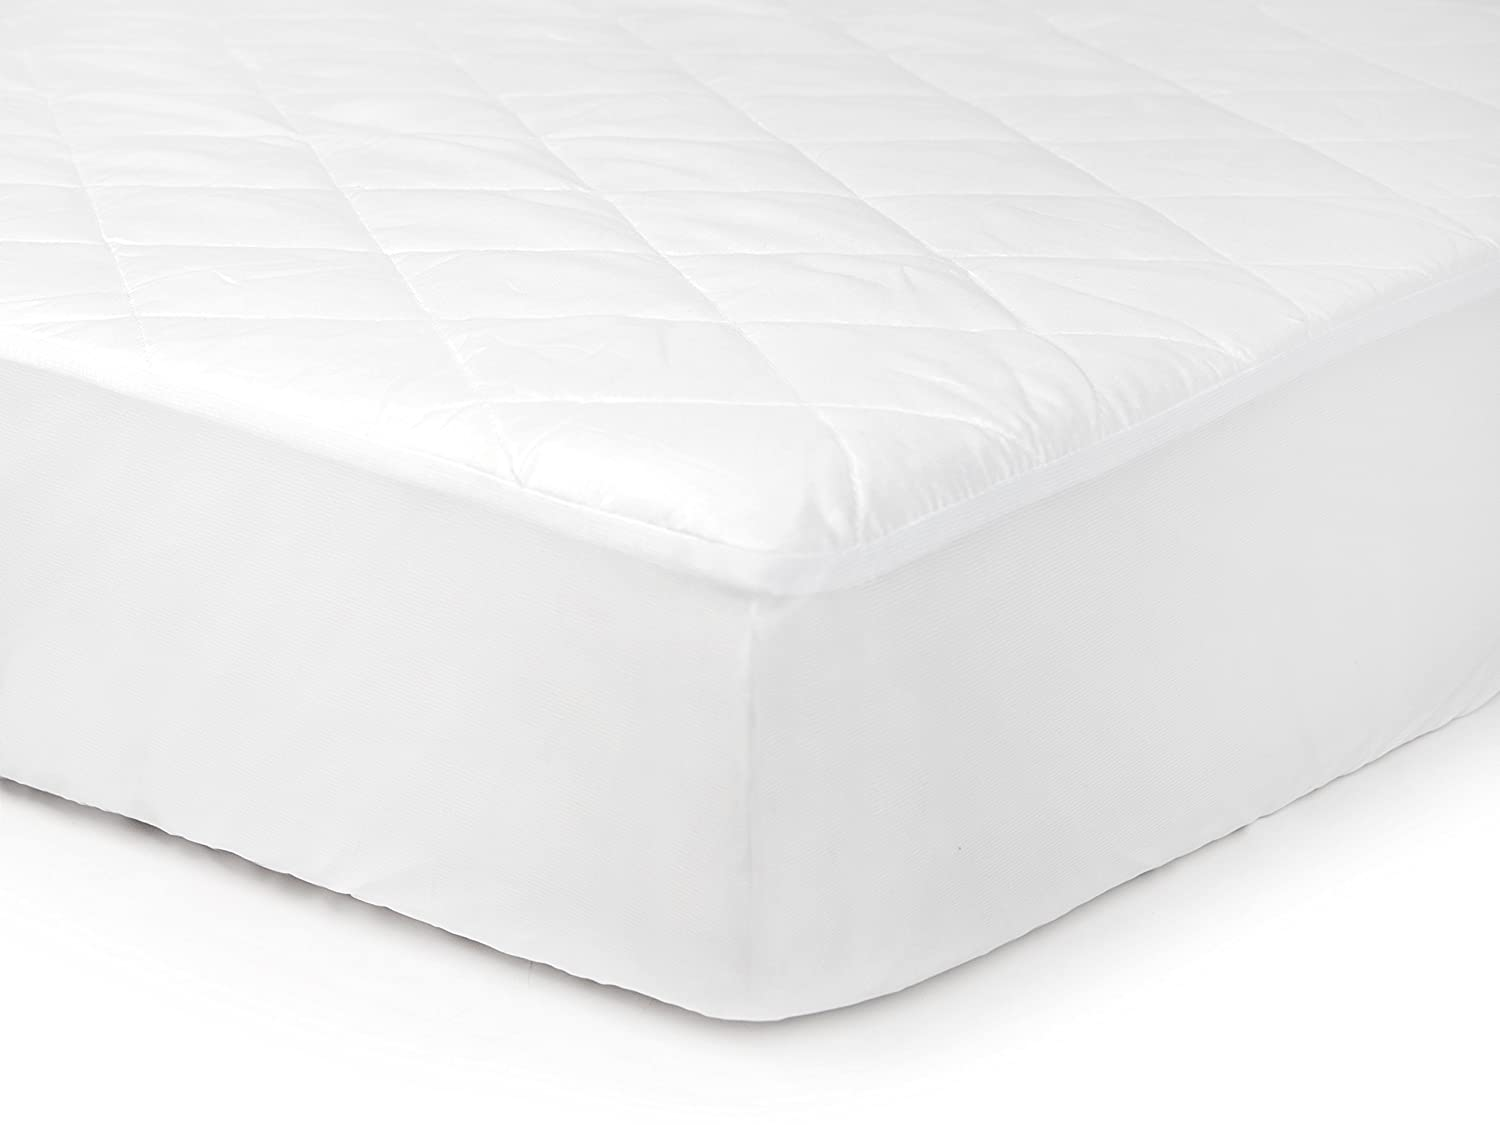 Tadpoles Waterproof Fitted Crib and Toddler Protective Mattress Pad Cover, White Sleeping Partners Int'l BMCBQT009